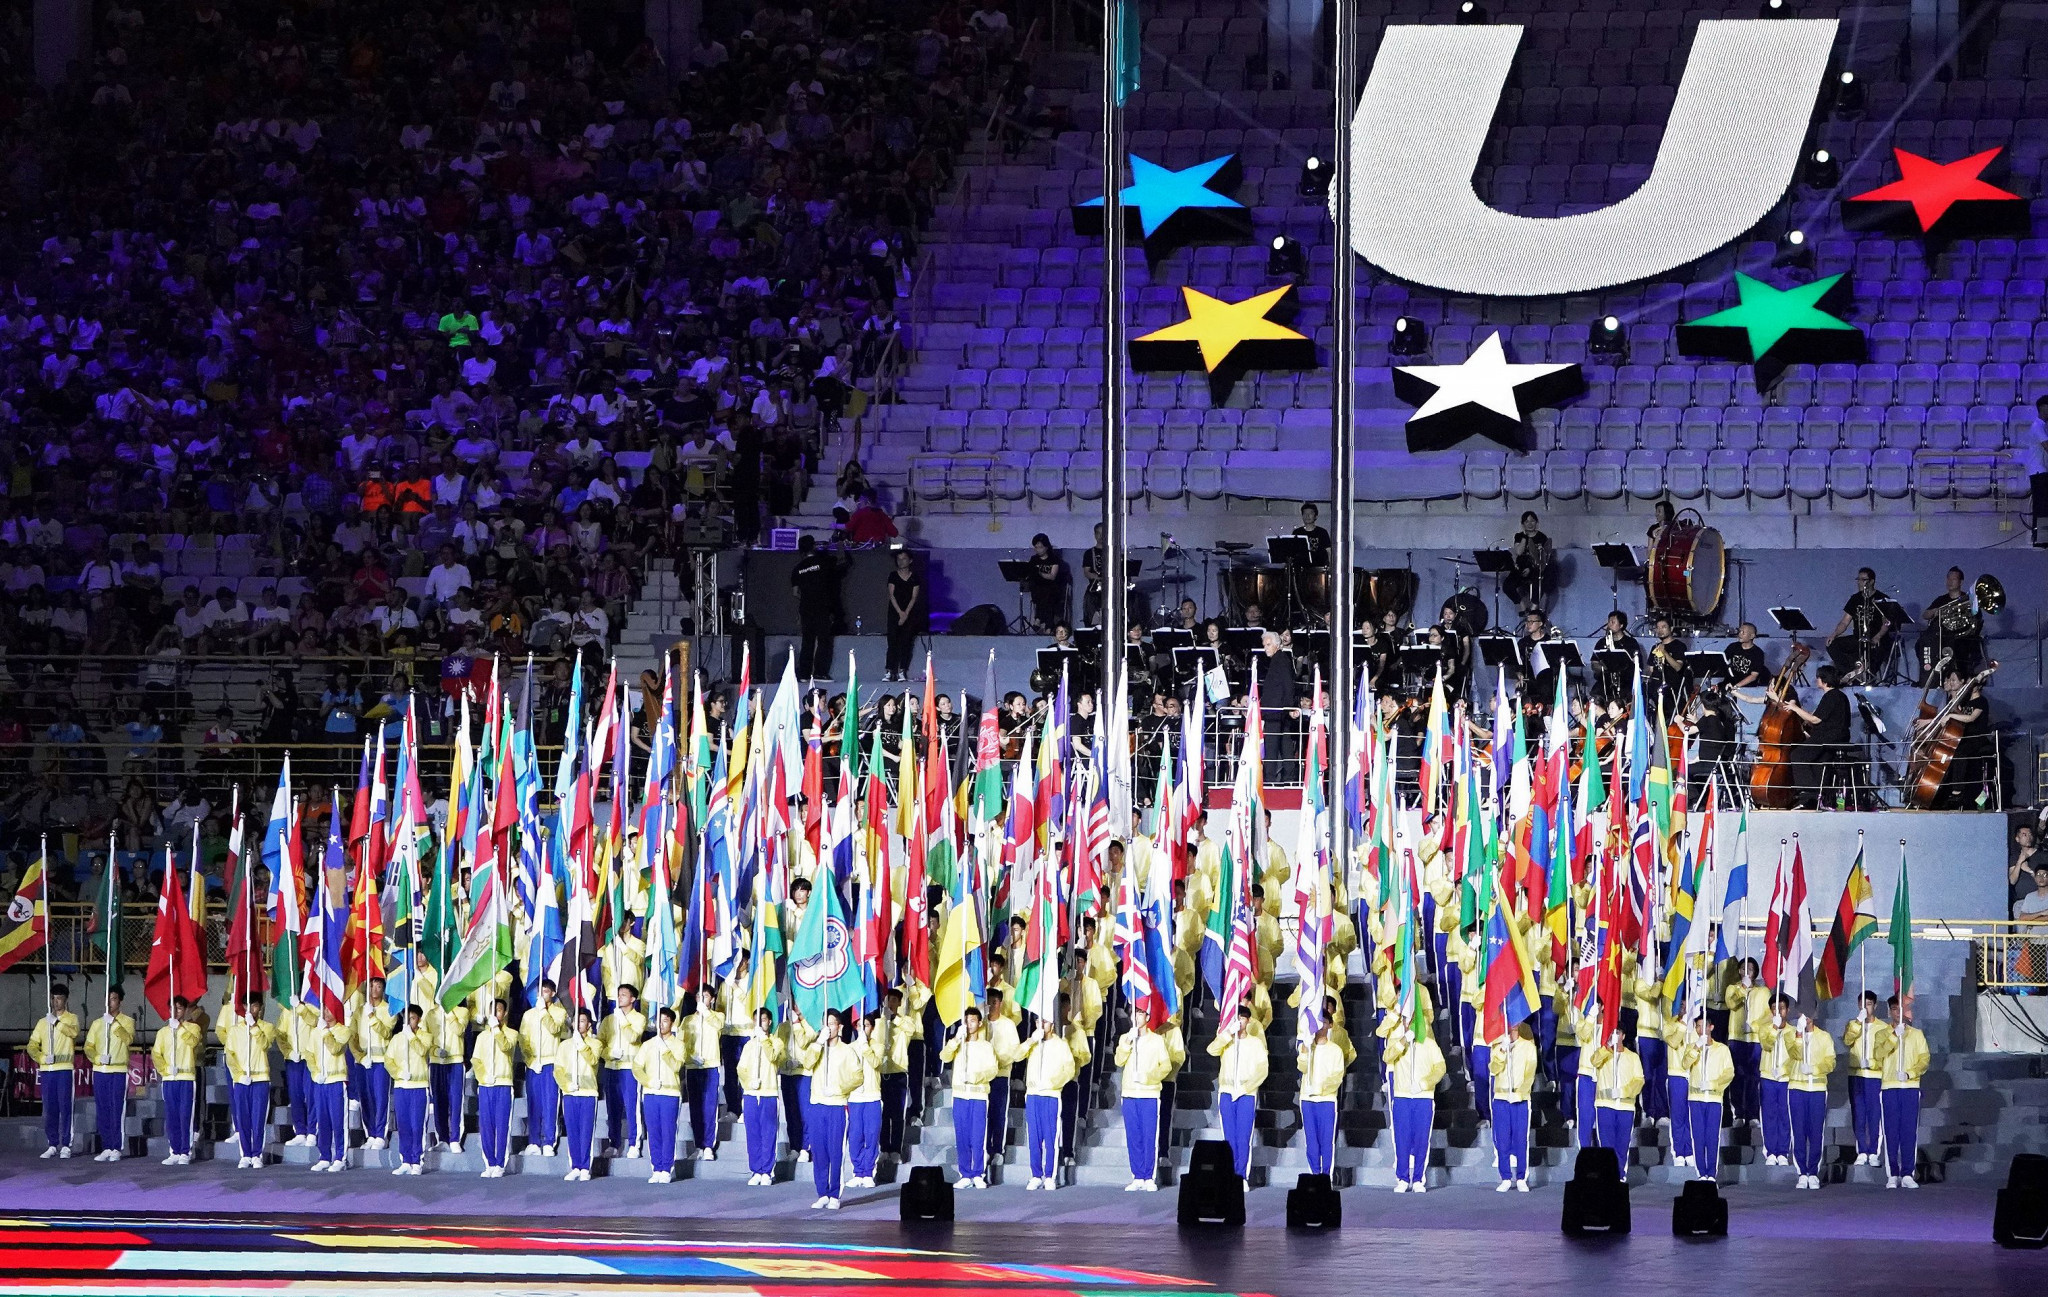 The Universiade is considered the pinnacle of tertiary sporting competition. The latest summer edition took place in Taipei last year ©Getty Images